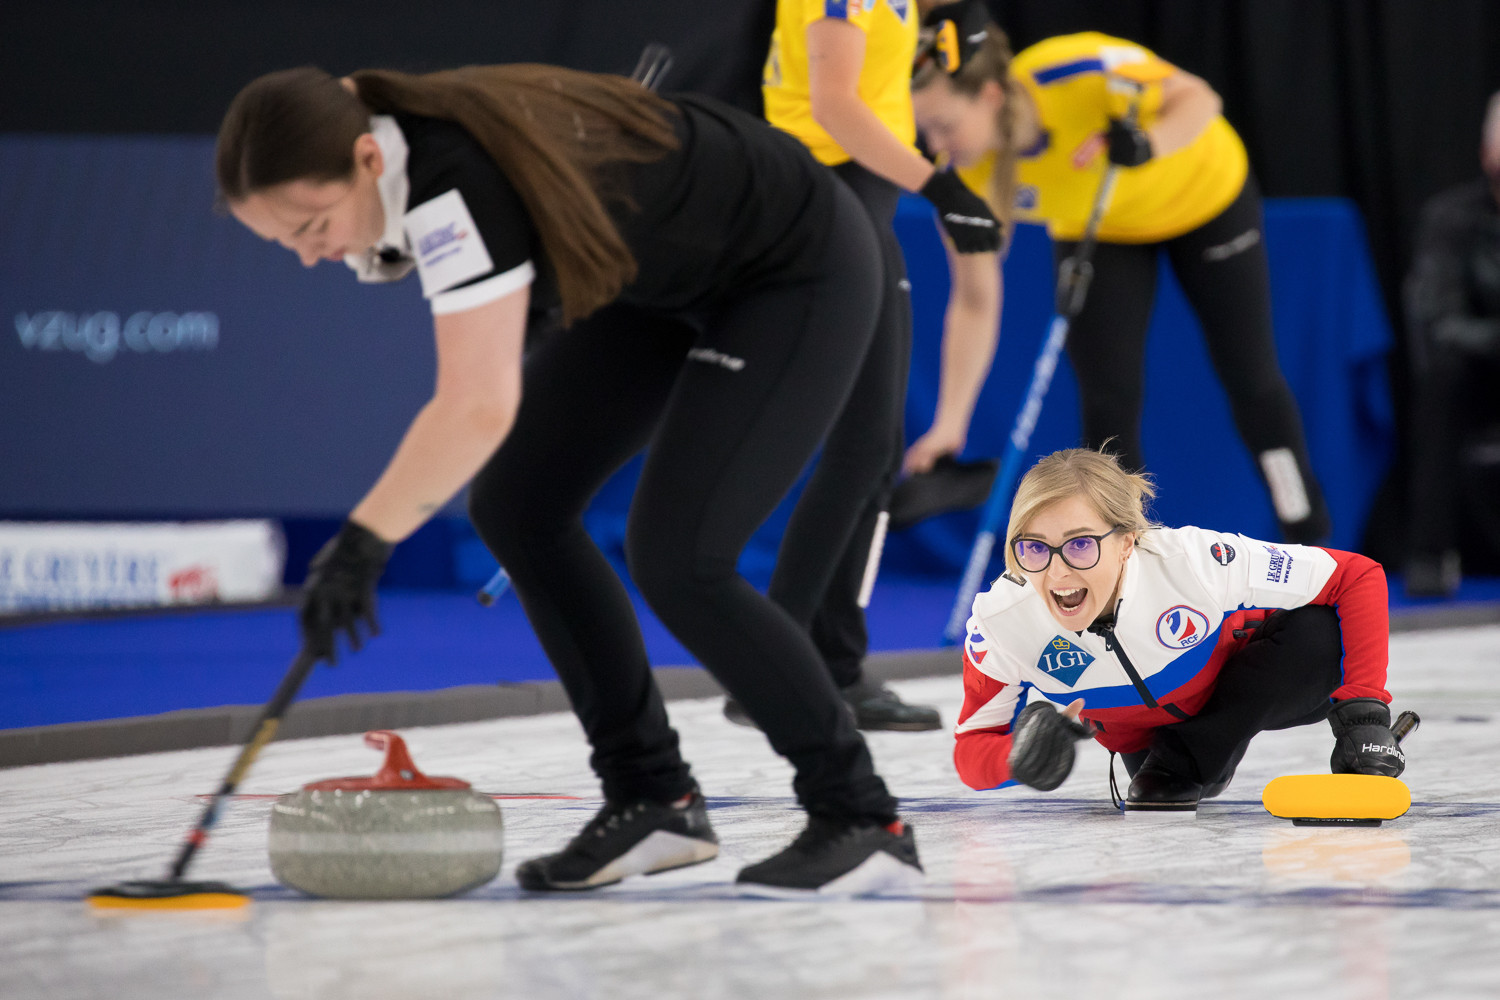 The RCF has made the final of the World Women's Curling Championship ©WCF/Steve Seixeiro